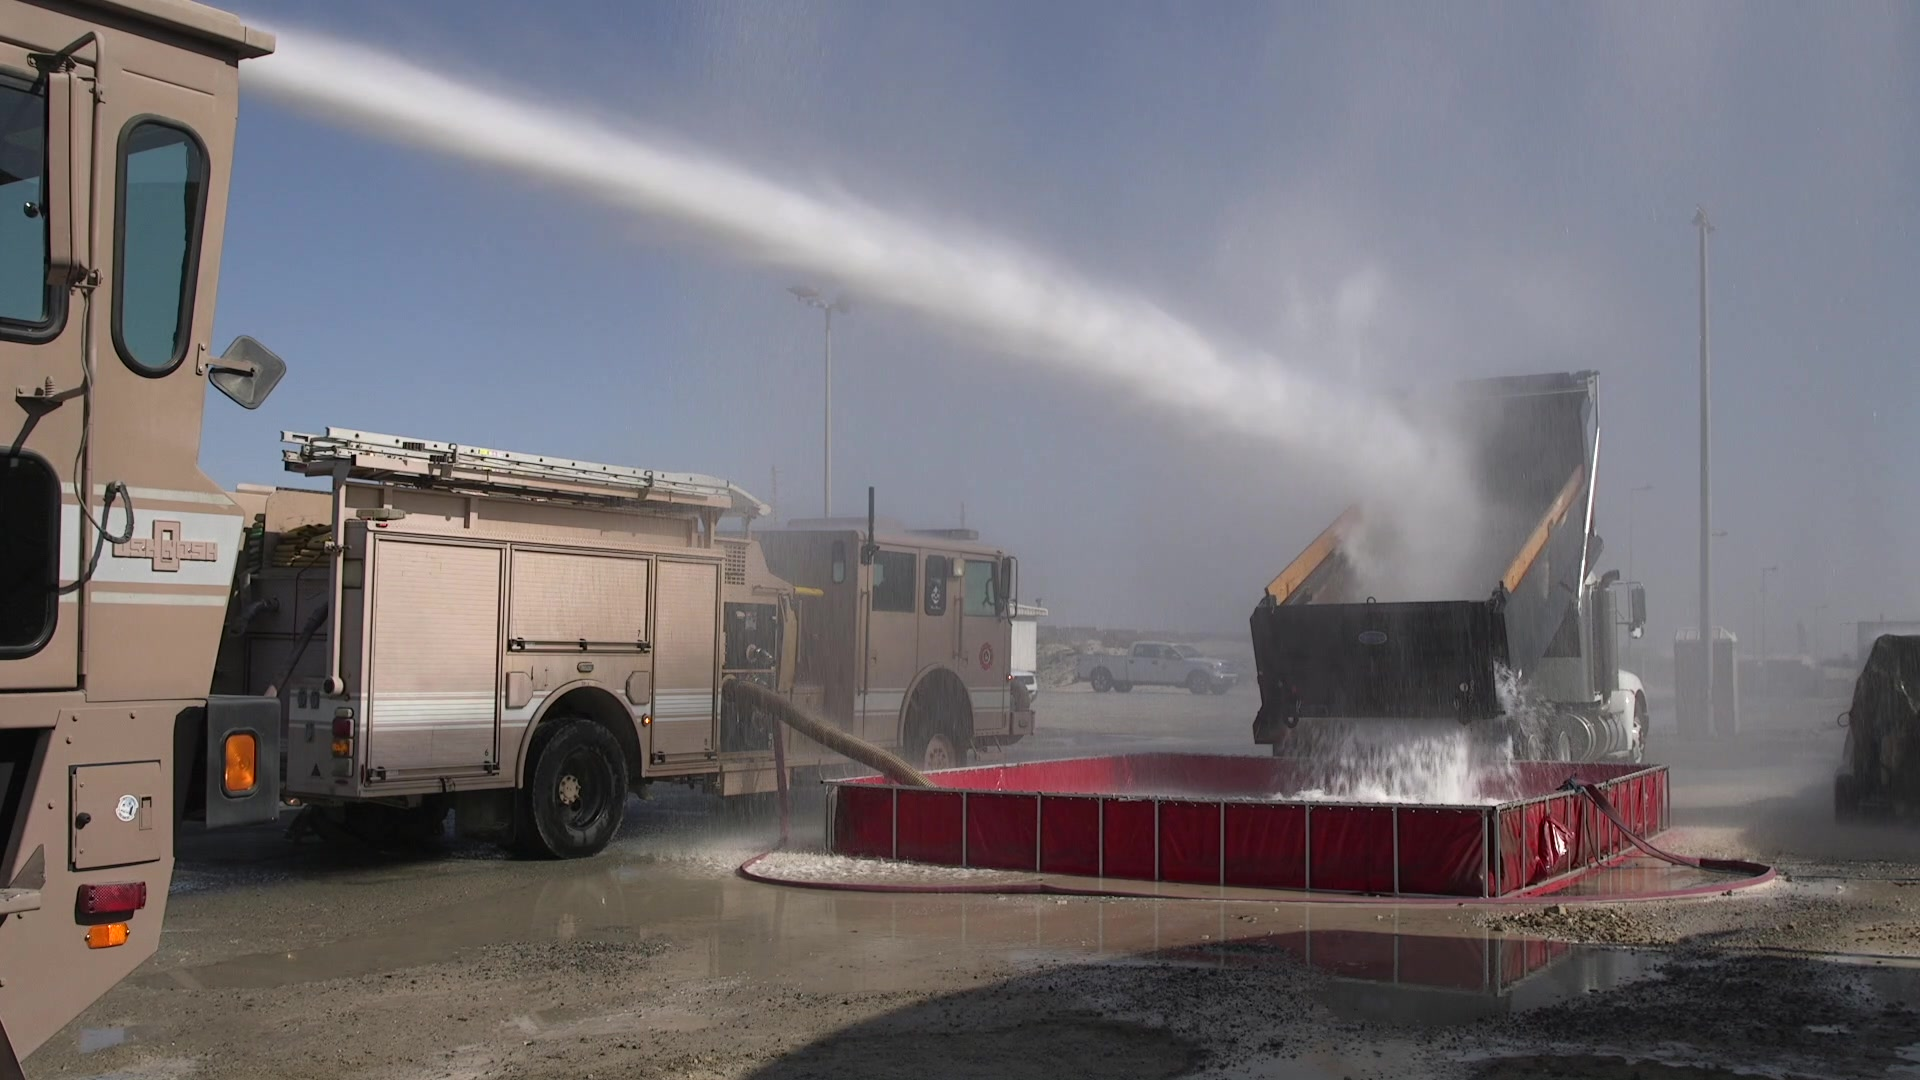 The 380th Air Expeditionary Wing Fire Department performed its annual water pump test with a change- using a simple yet innovative method to conserve their water.